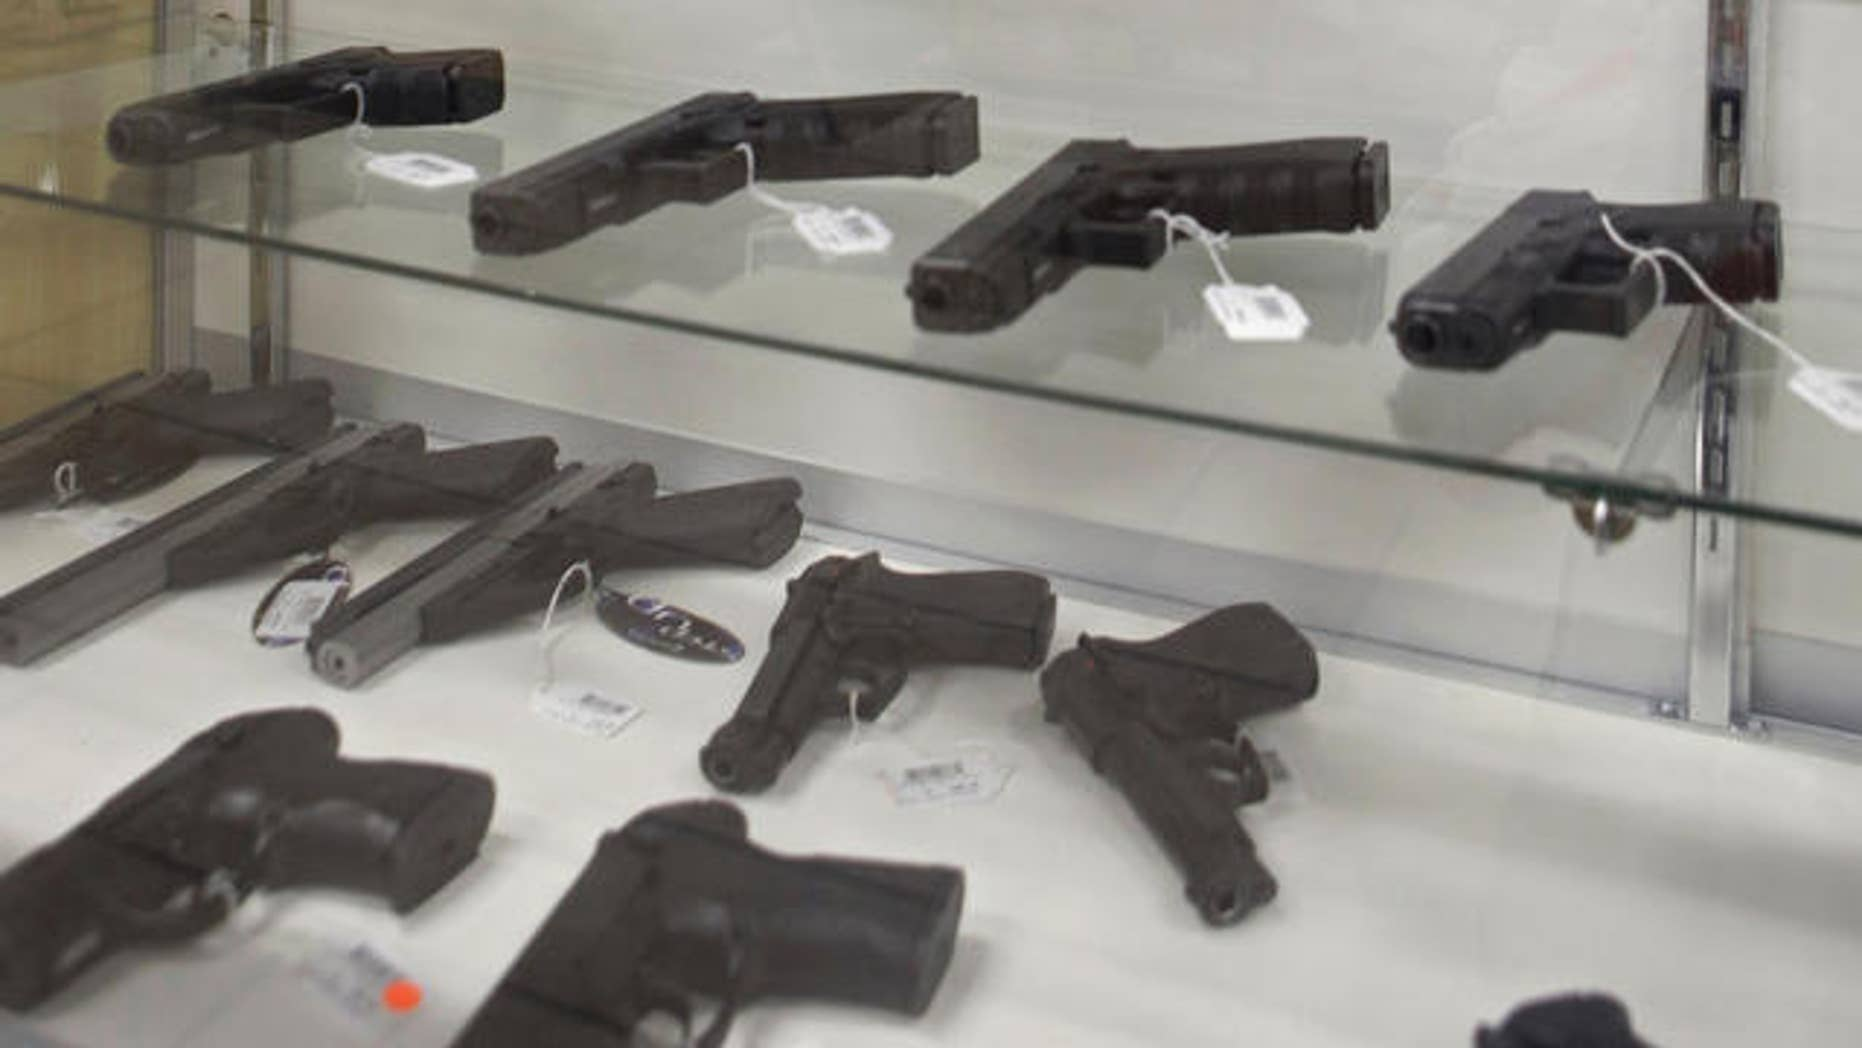 The New York prosecutor has reversed a policy that banned her assistant district attorneys from legally possessing guns.